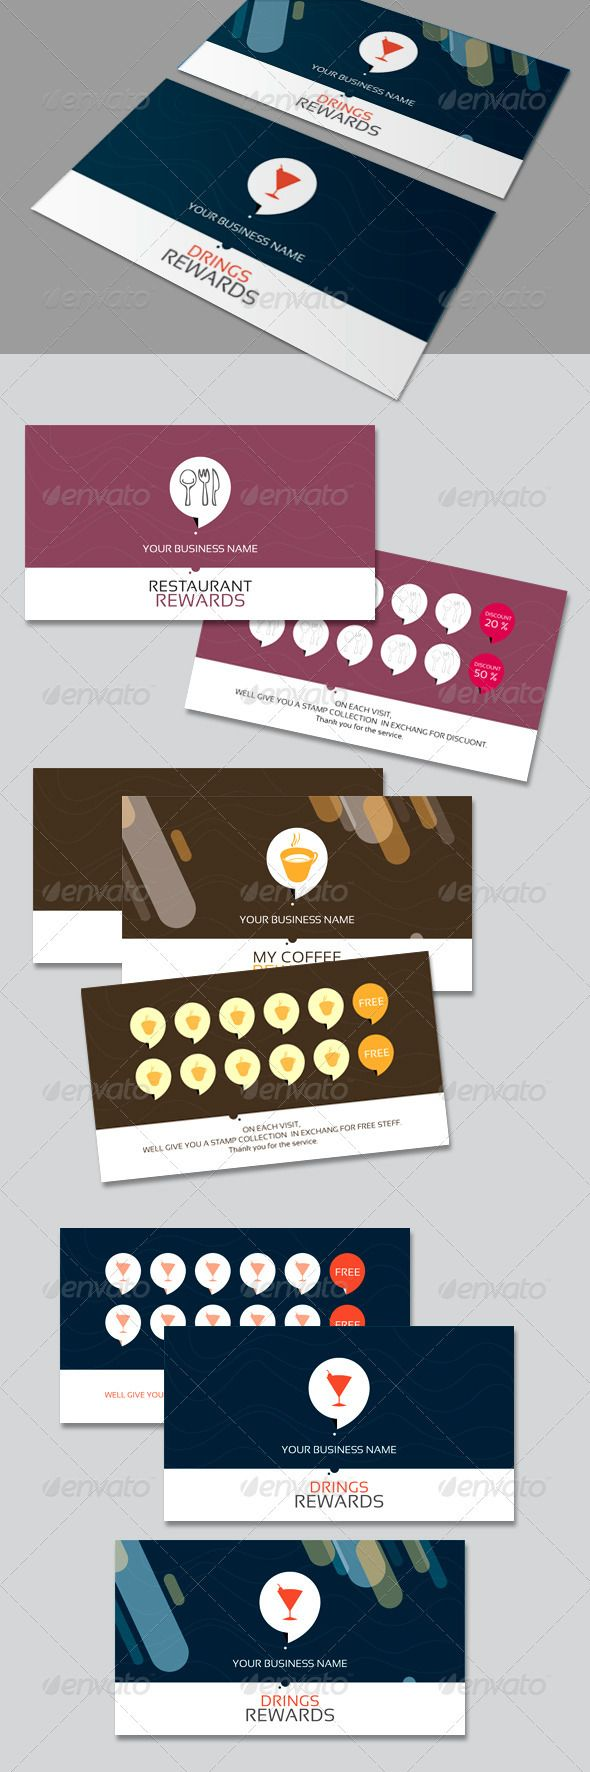 best 25 loyalty cards ideas on pinterest loyalty card design beauty salon ideas promotions. Black Bedroom Furniture Sets. Home Design Ideas